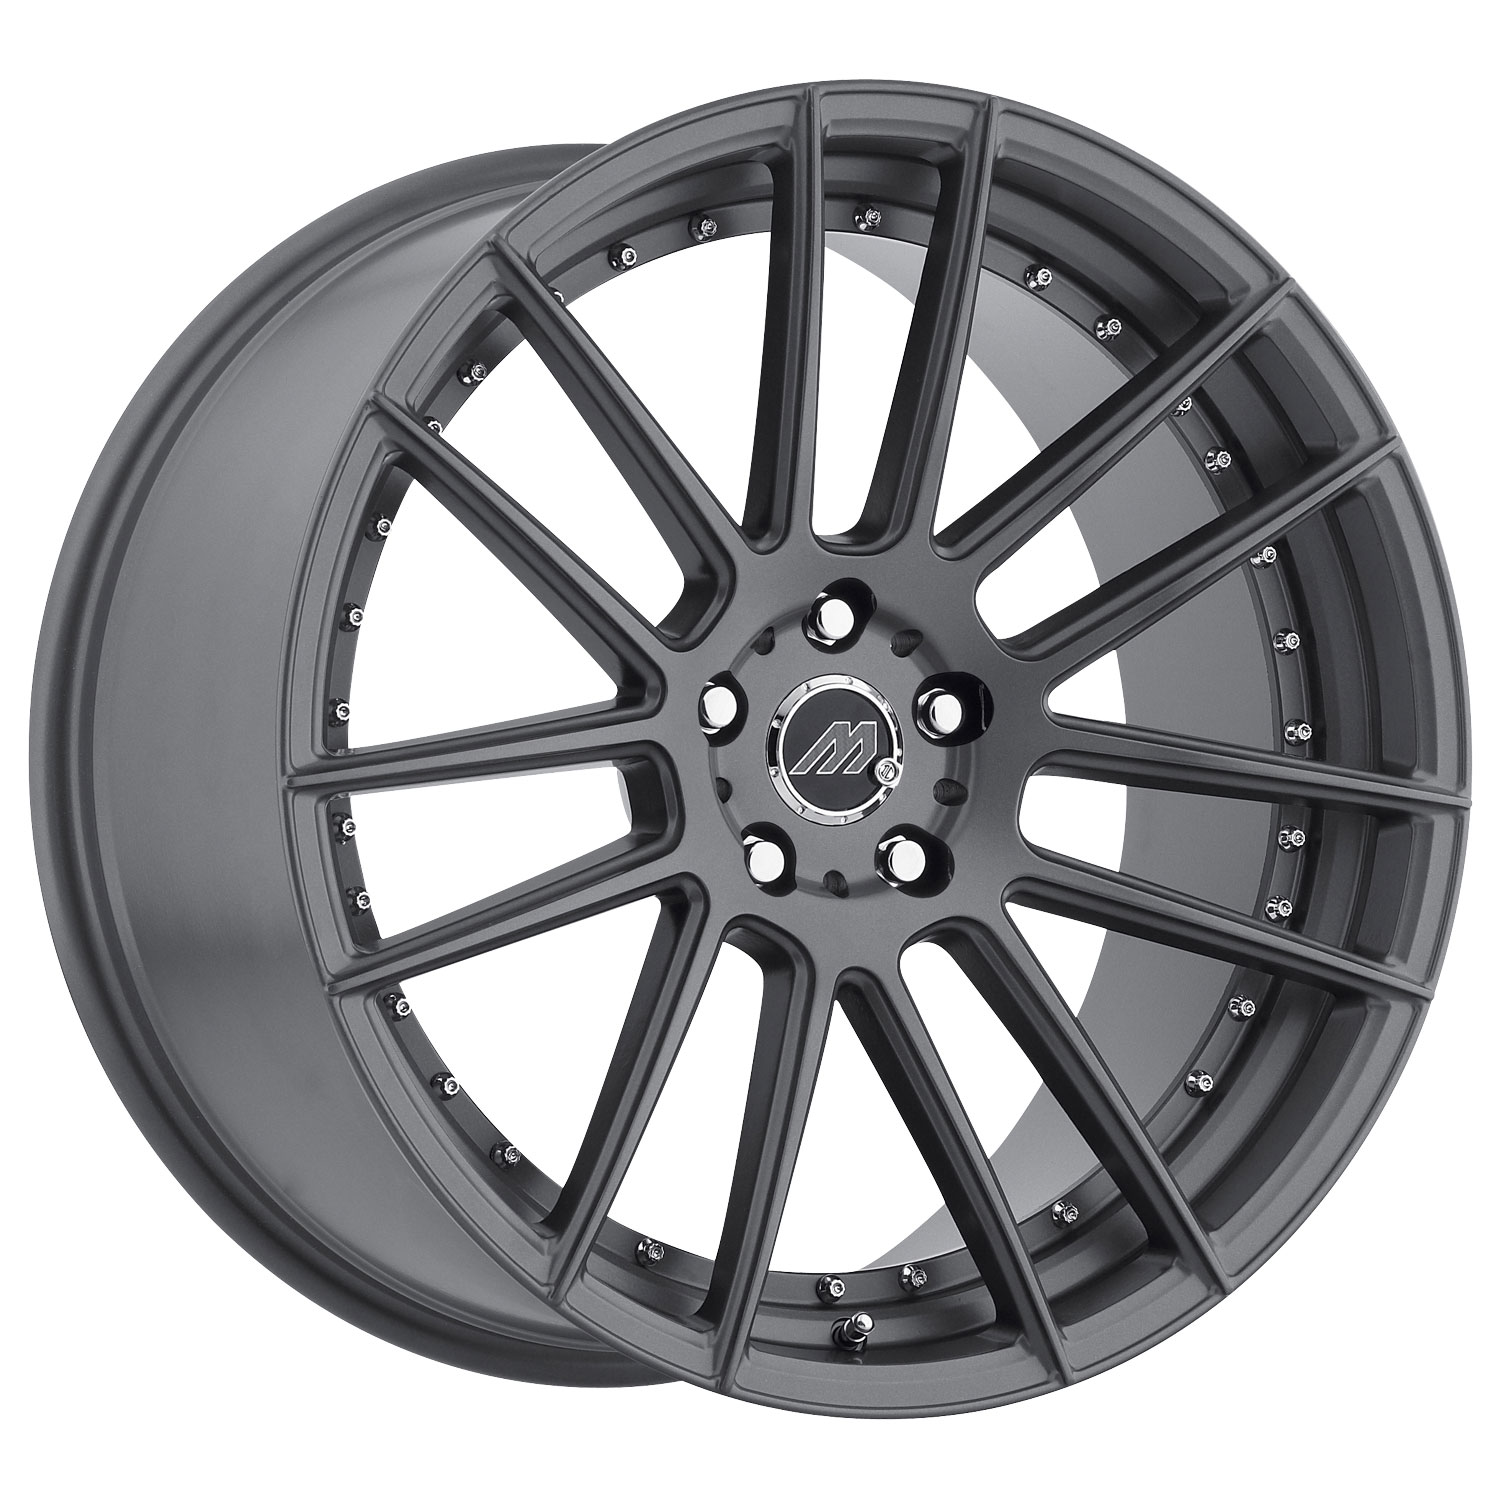 MACH MT7 Gunmetal Gray